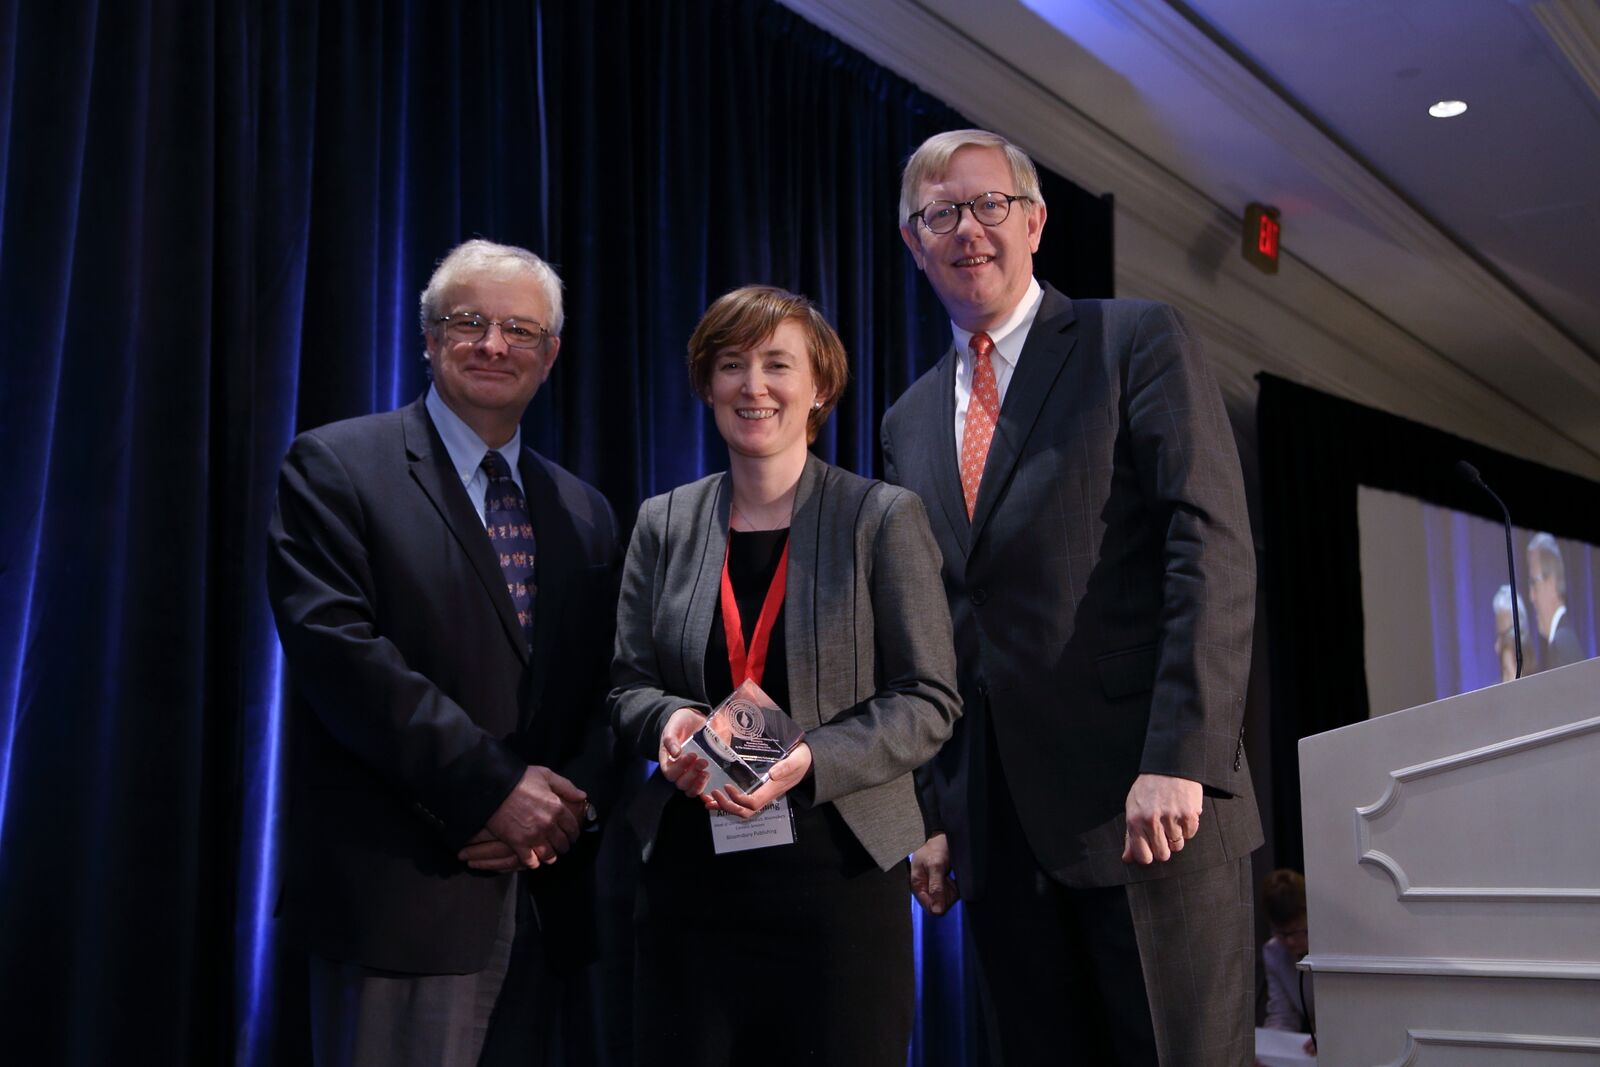 Bloomsbury Content Services Client Director Anna Fleming receiving the R.R. Hawkins Award